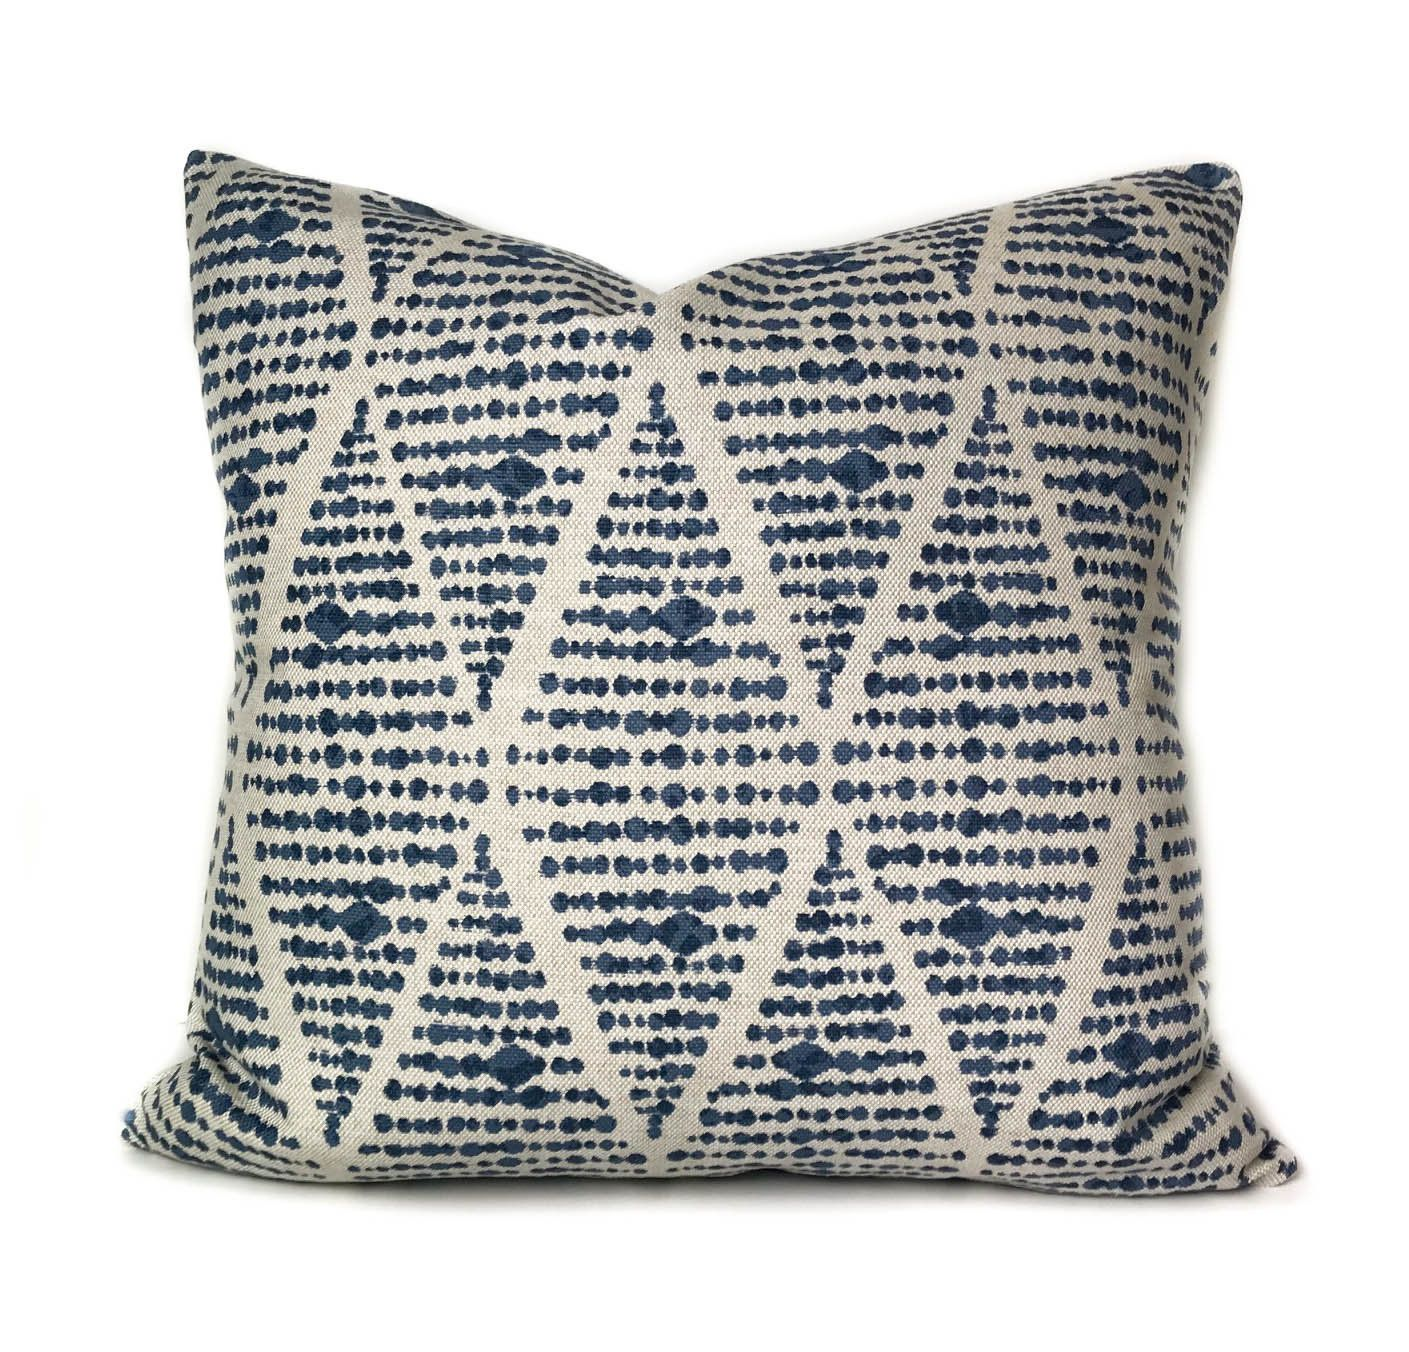 Outdoor Throw Pillow Cover With Zipper Blue Outdoor Patio Cushion In Modern Geometric Pattern Outdo Outdoor Throw Pillows Throw Pillows Outdoor Pillow Covers